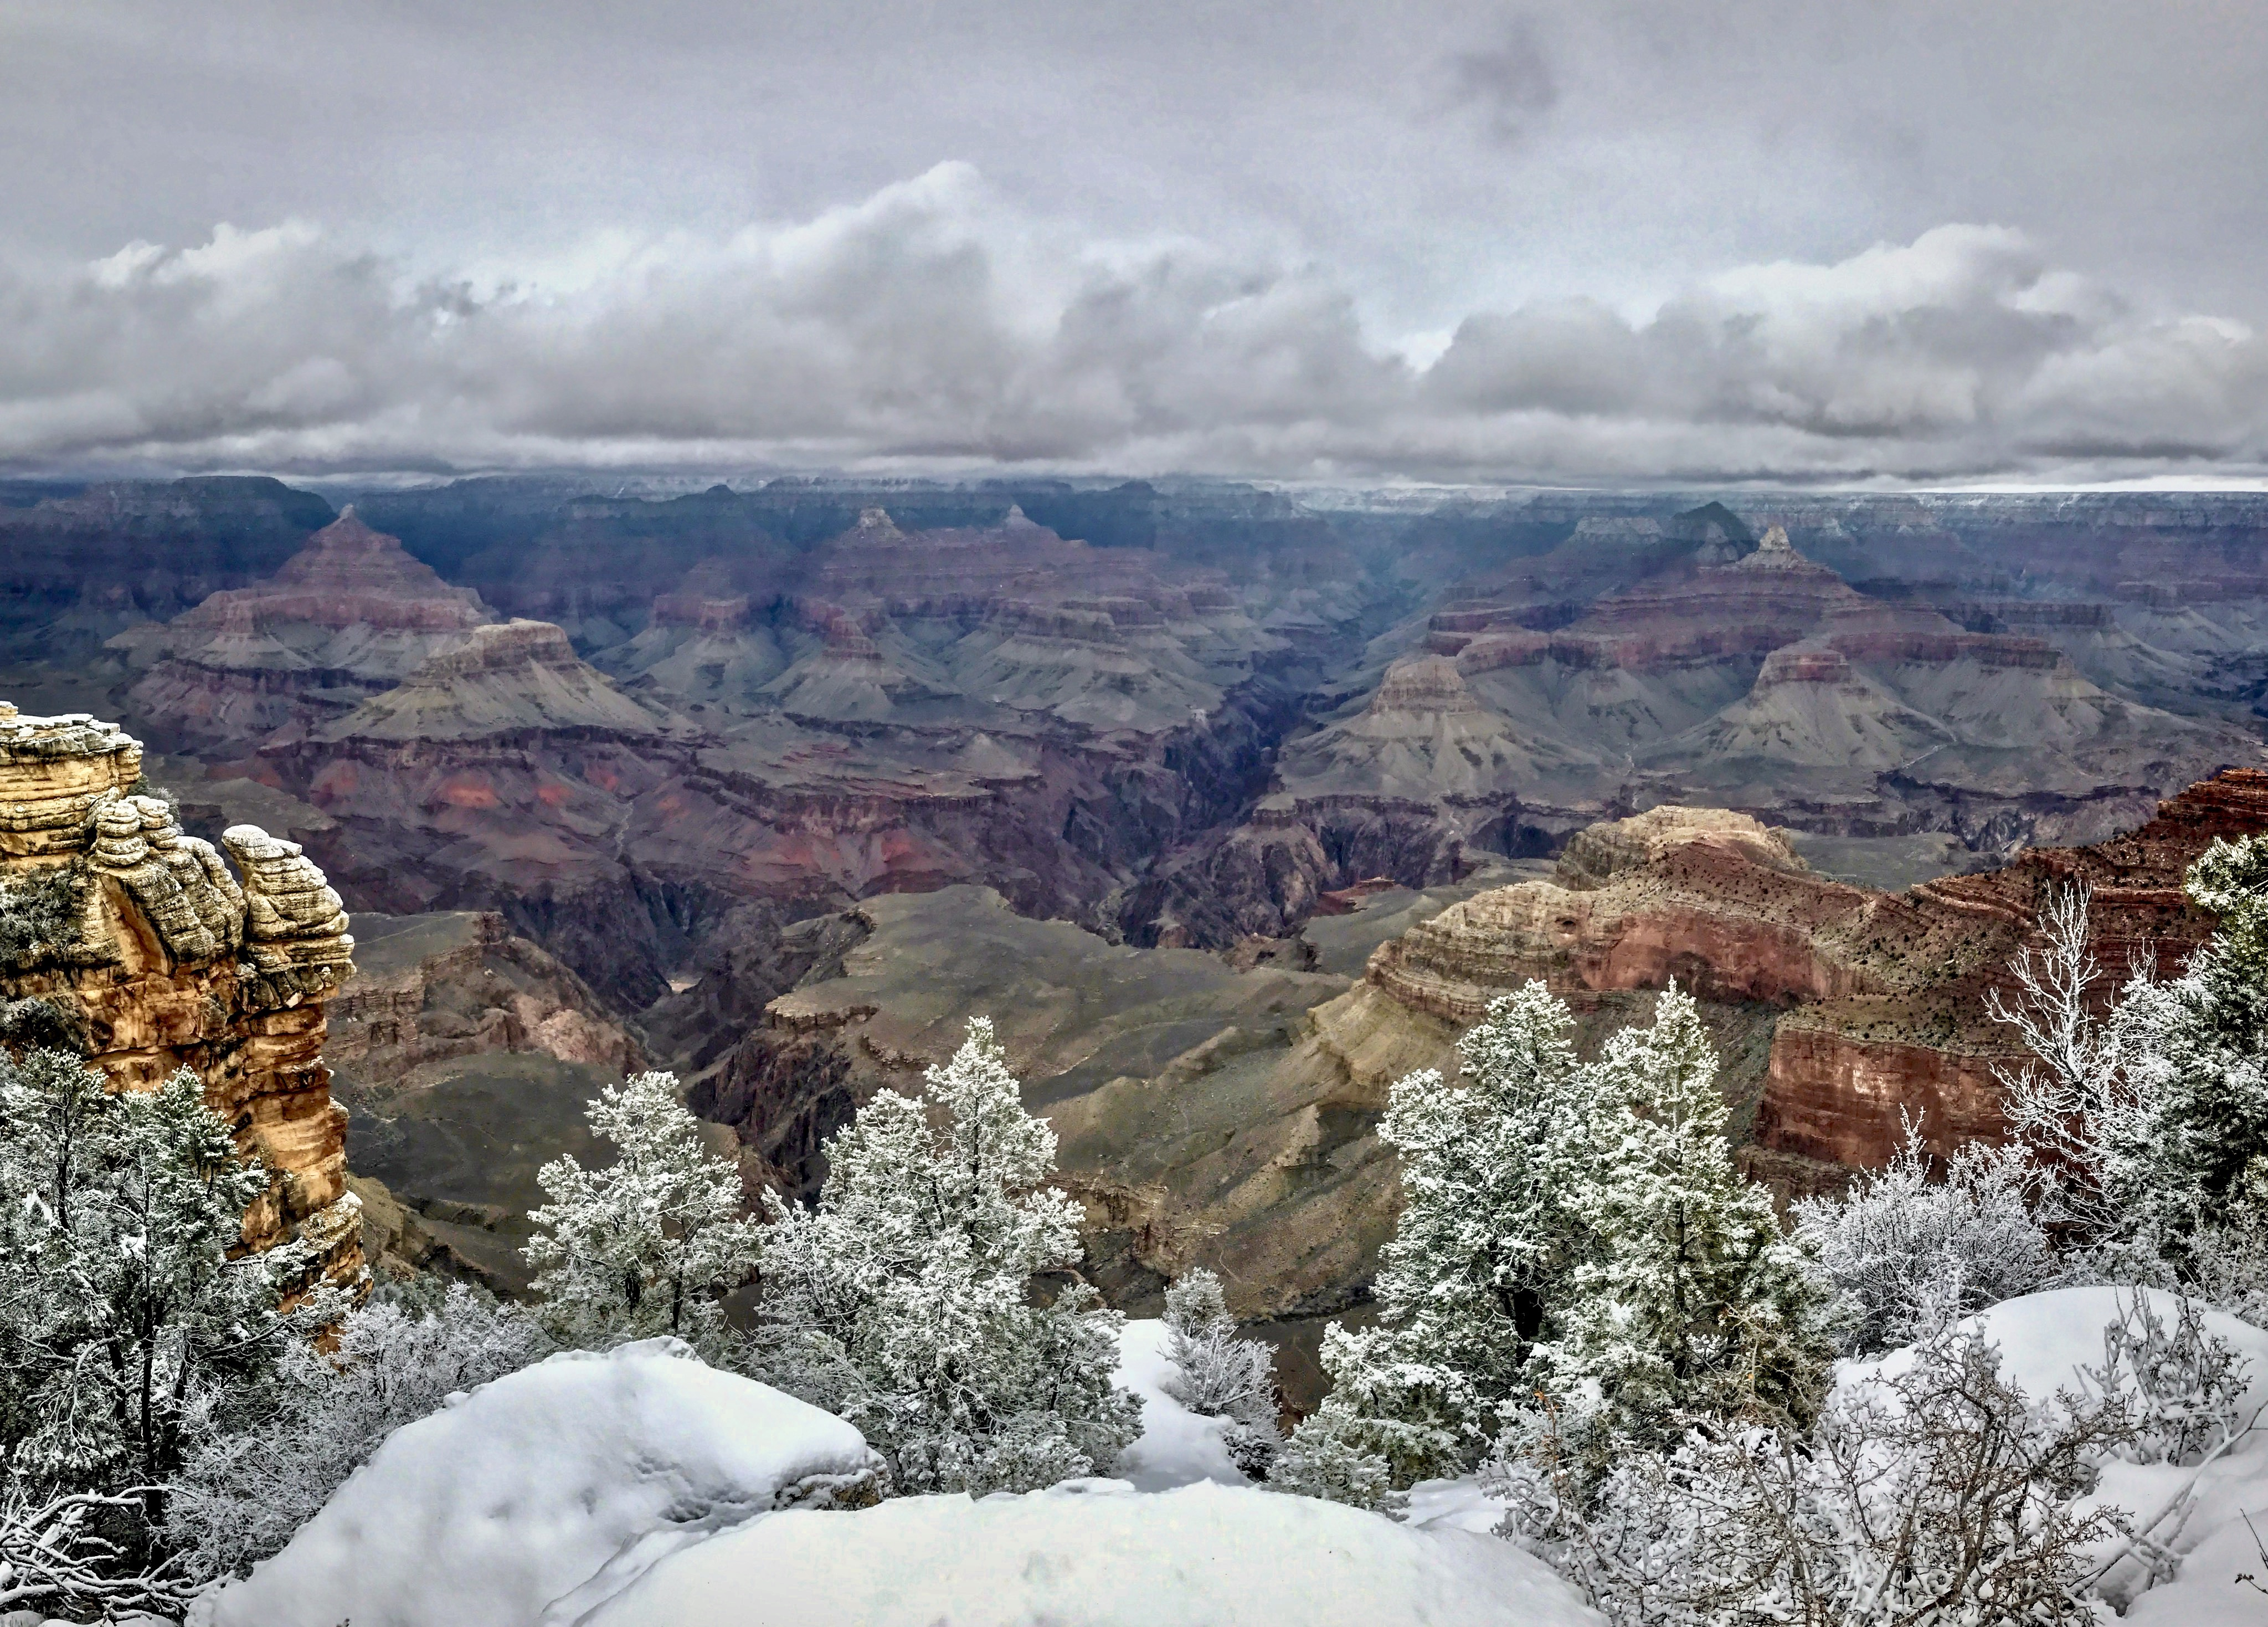 A dusting of snow over cliffs and mesas.